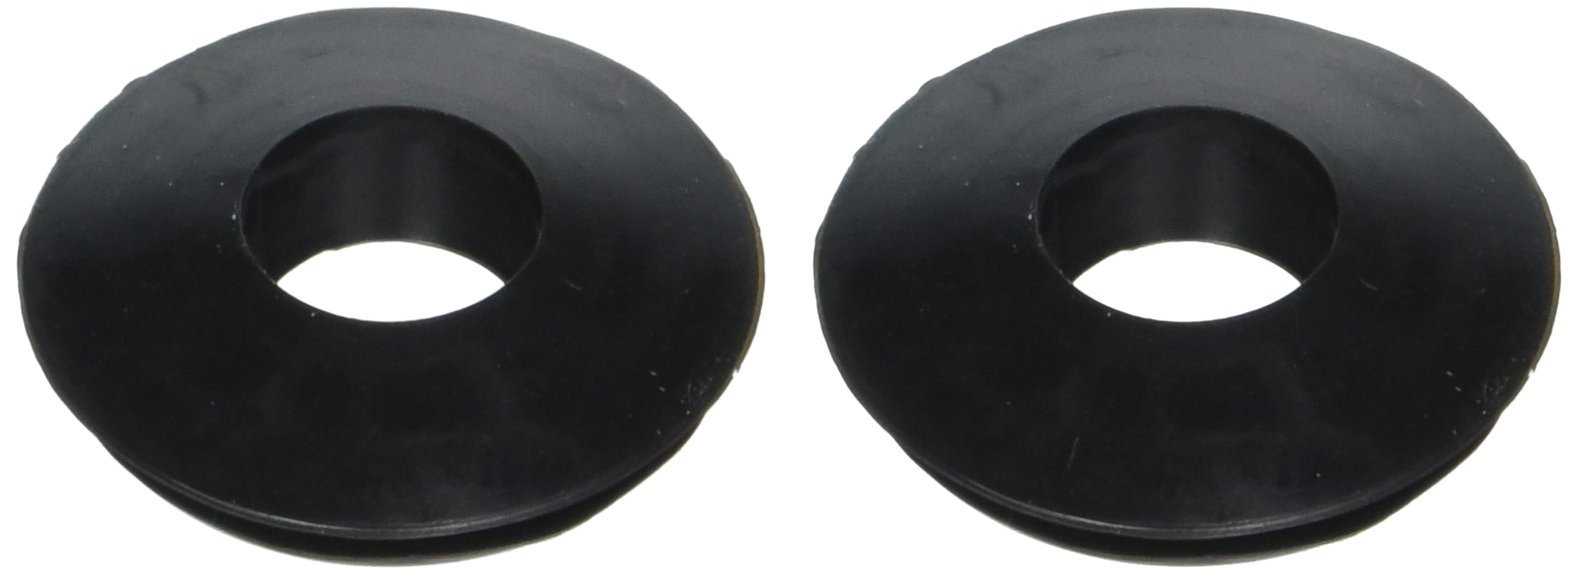 RoadPro RP-3601 Black Double Lip Gladhand Seal, (Pack of 2)